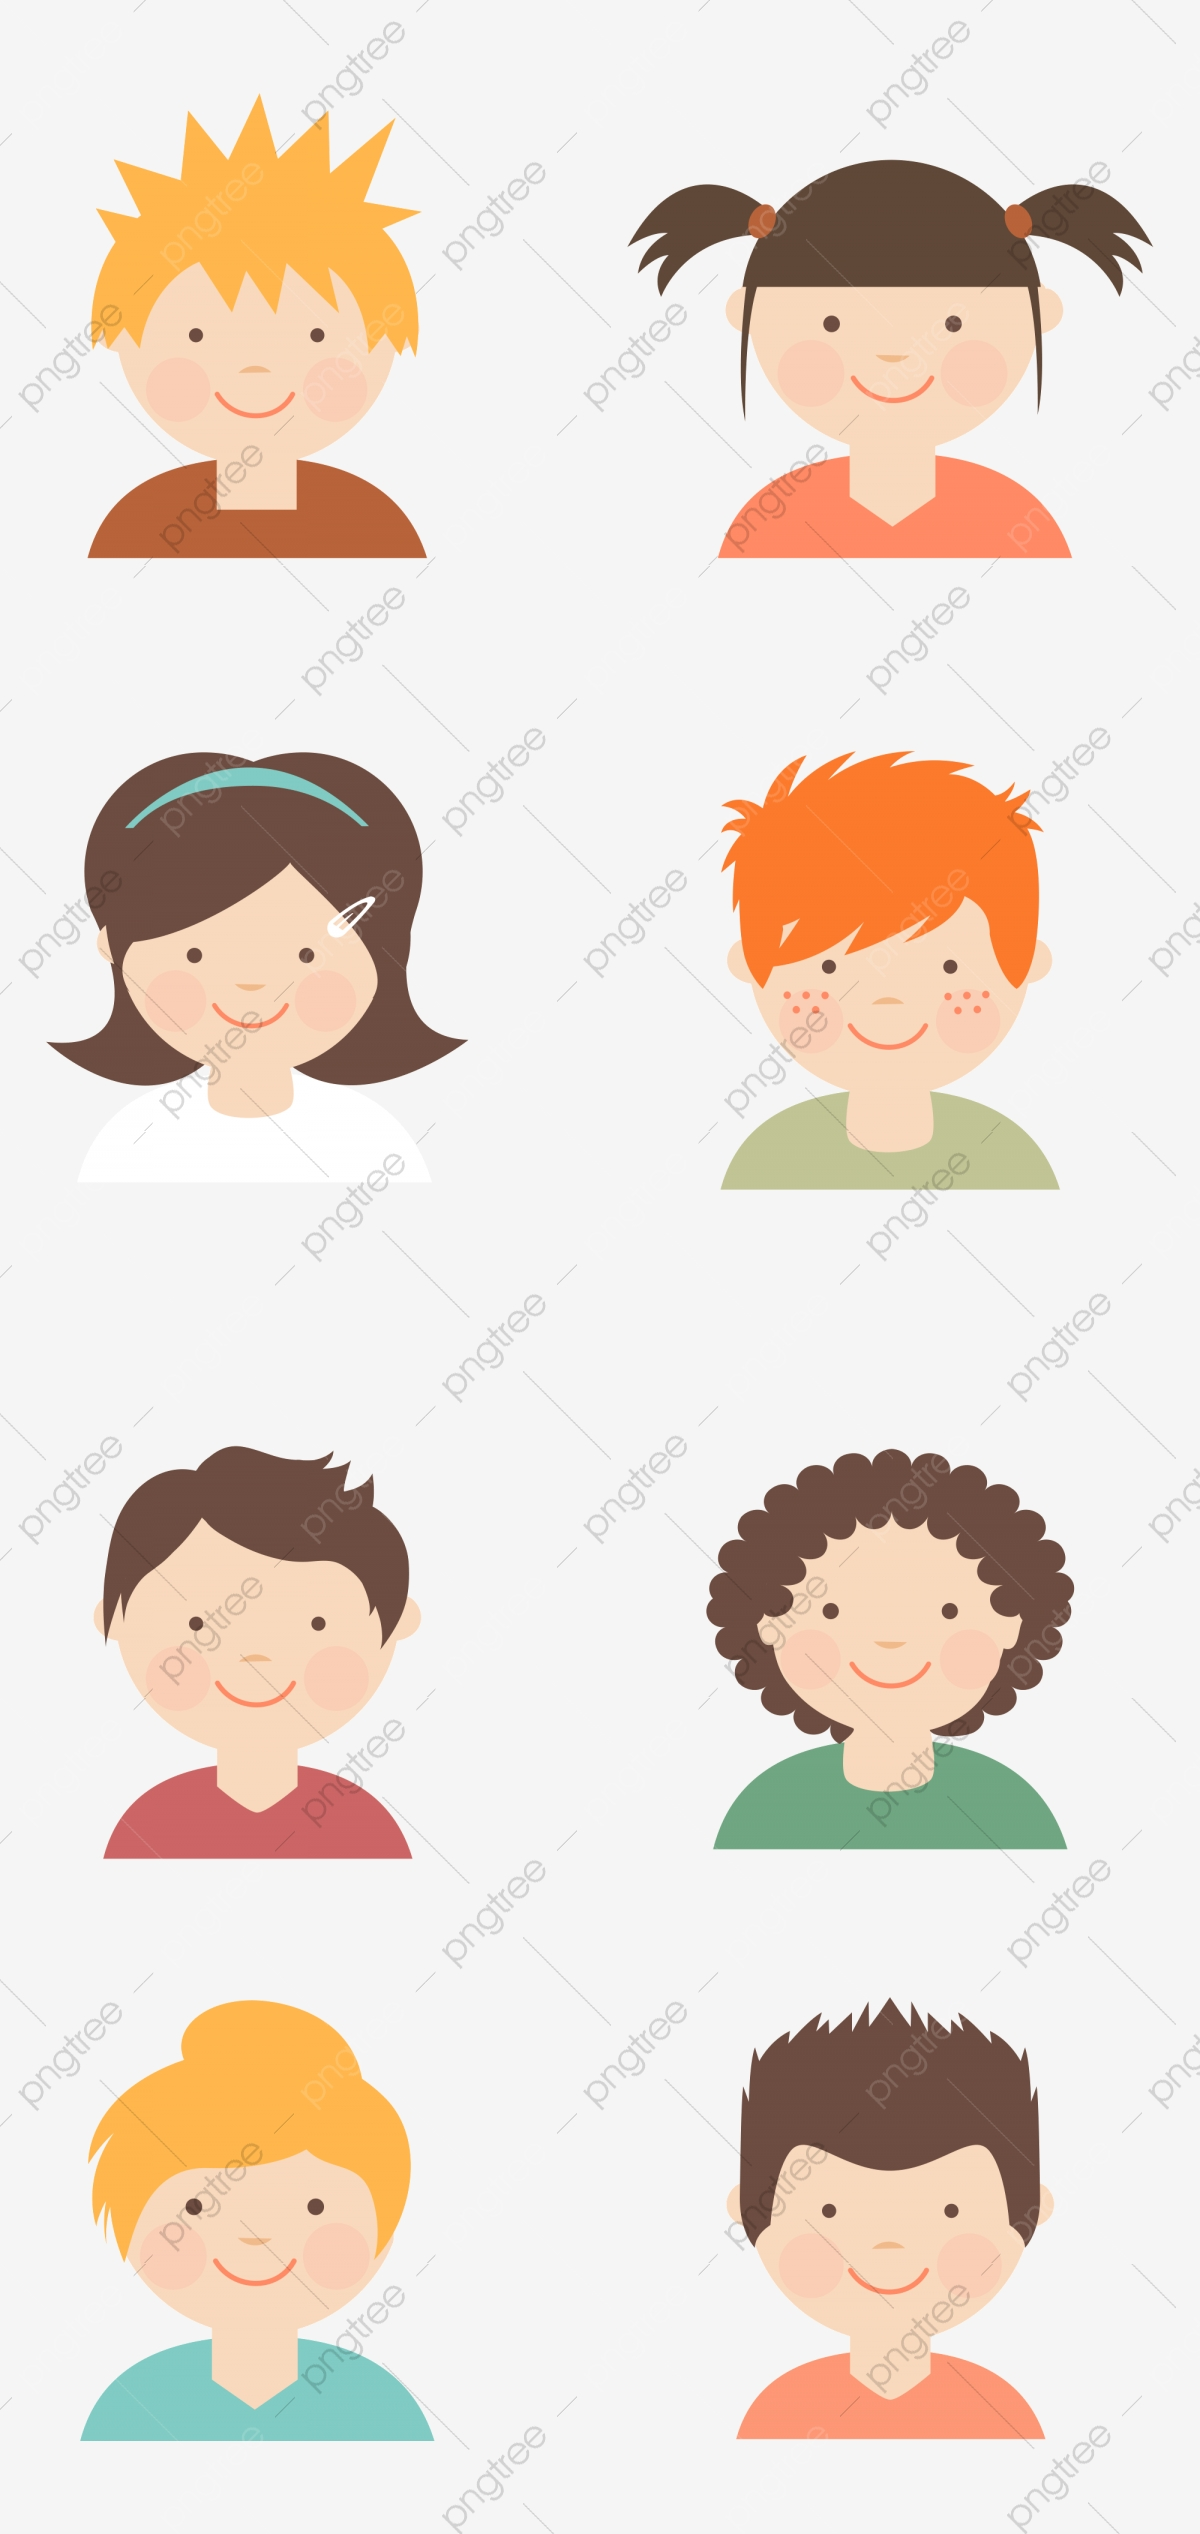 Young clipart human baby. Student child kindergarten six